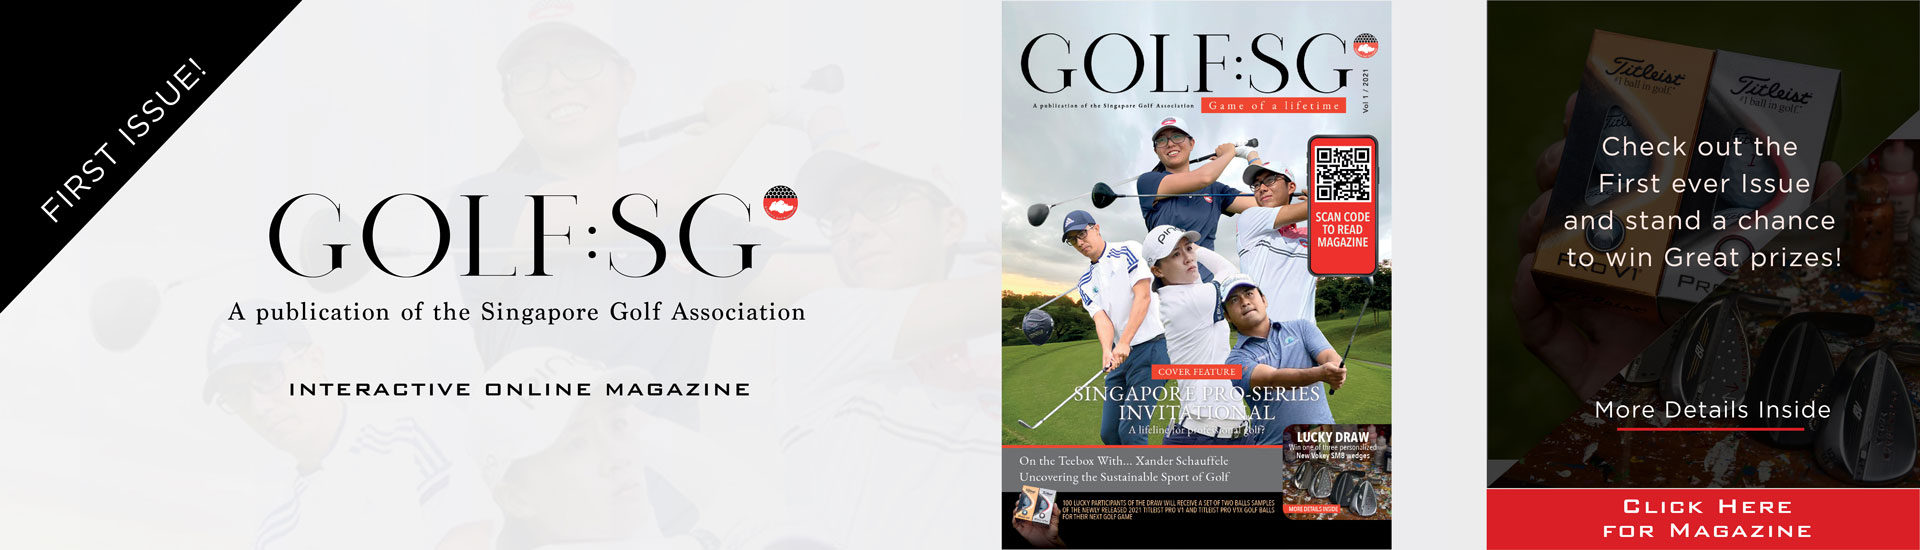 The first issue of Golf:SG is now available